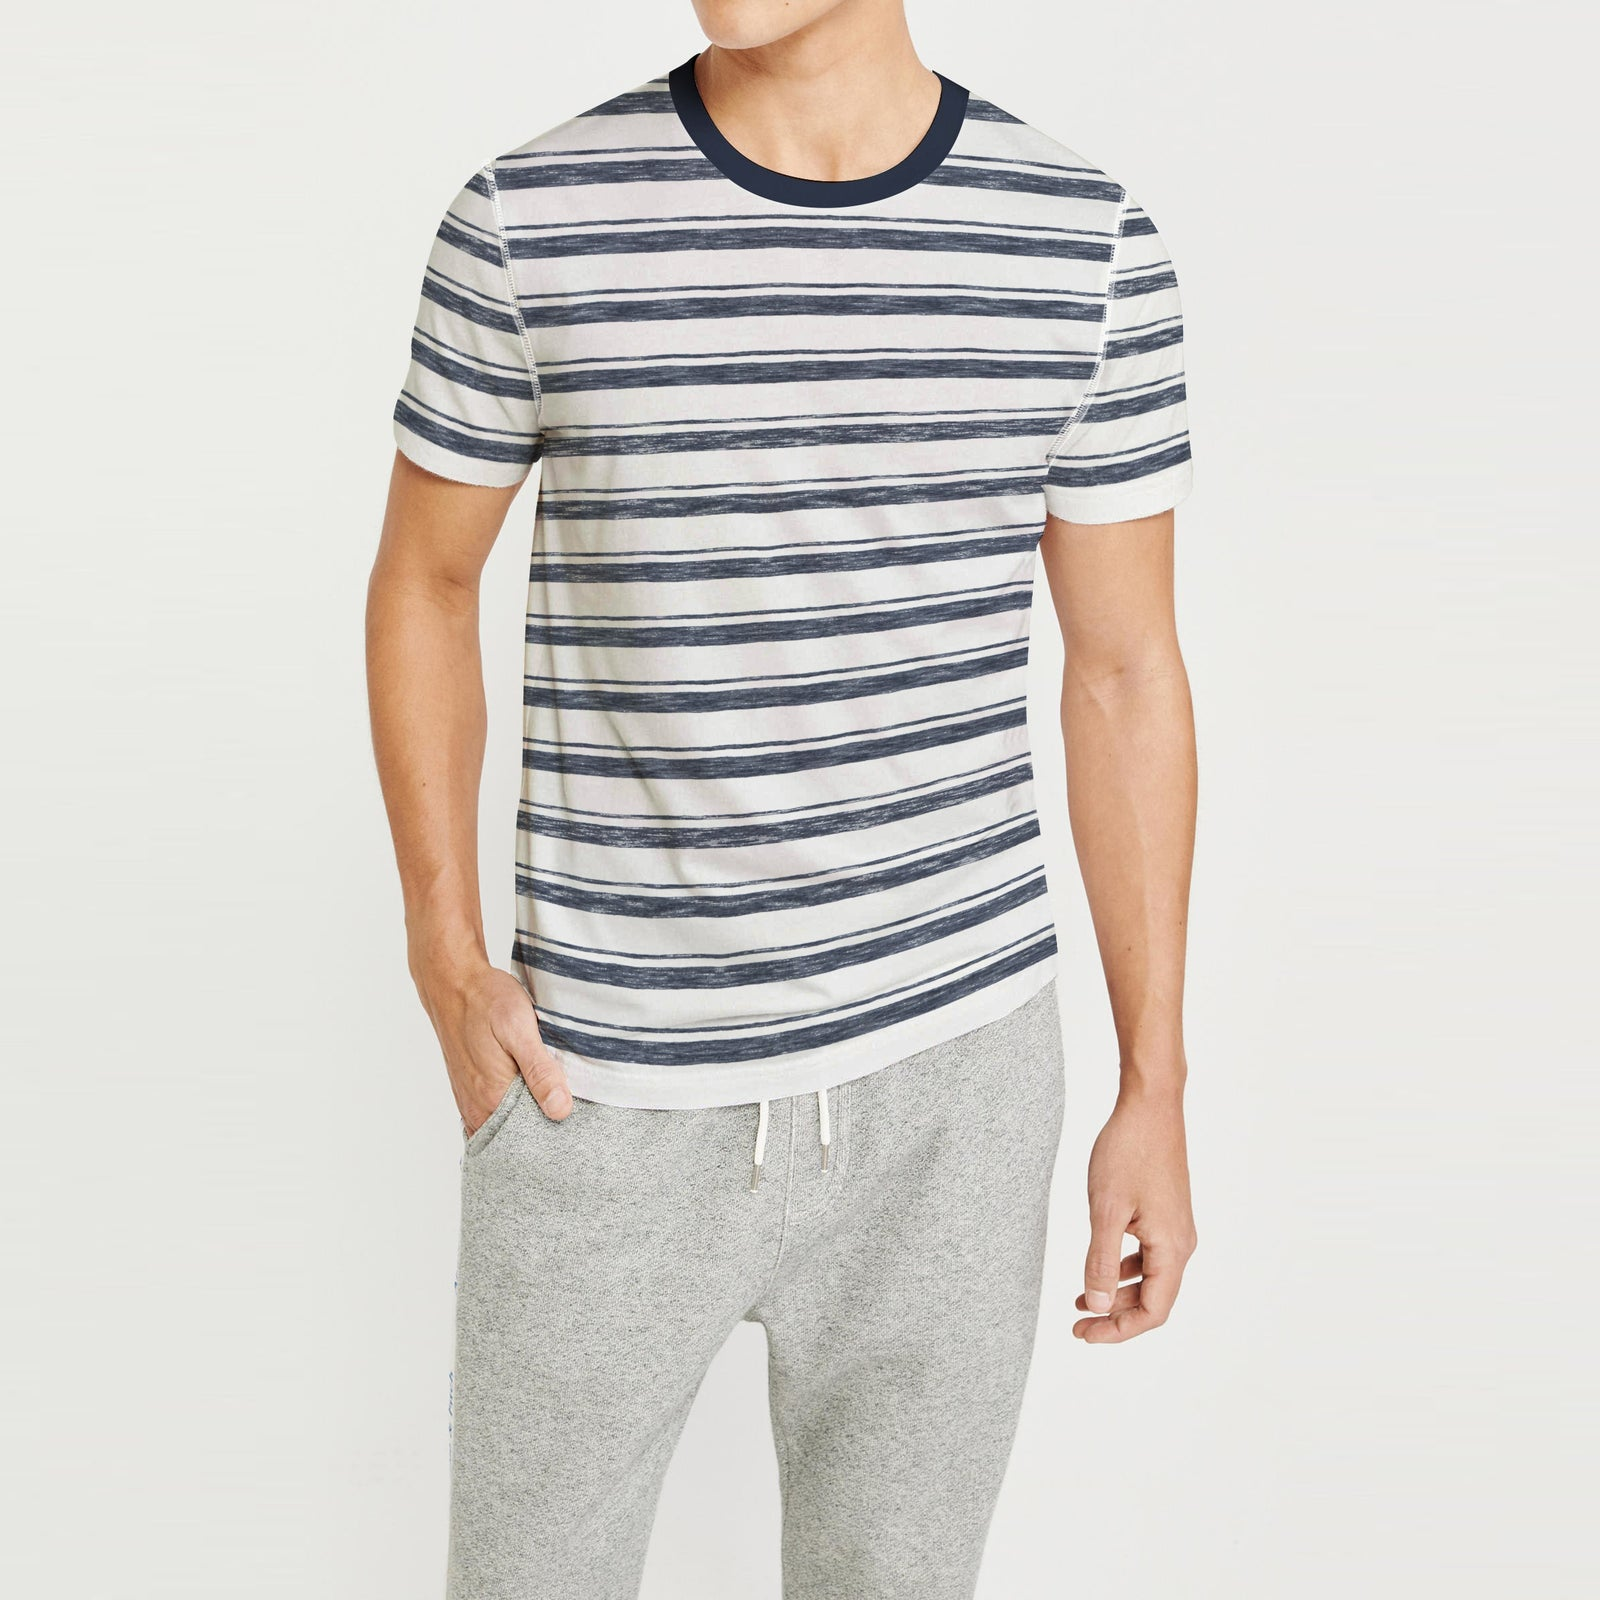 c4ed65029af6b Fat Face Crew Neck Half Sleeve Tee Shirt For Men-Off White with Stripe-